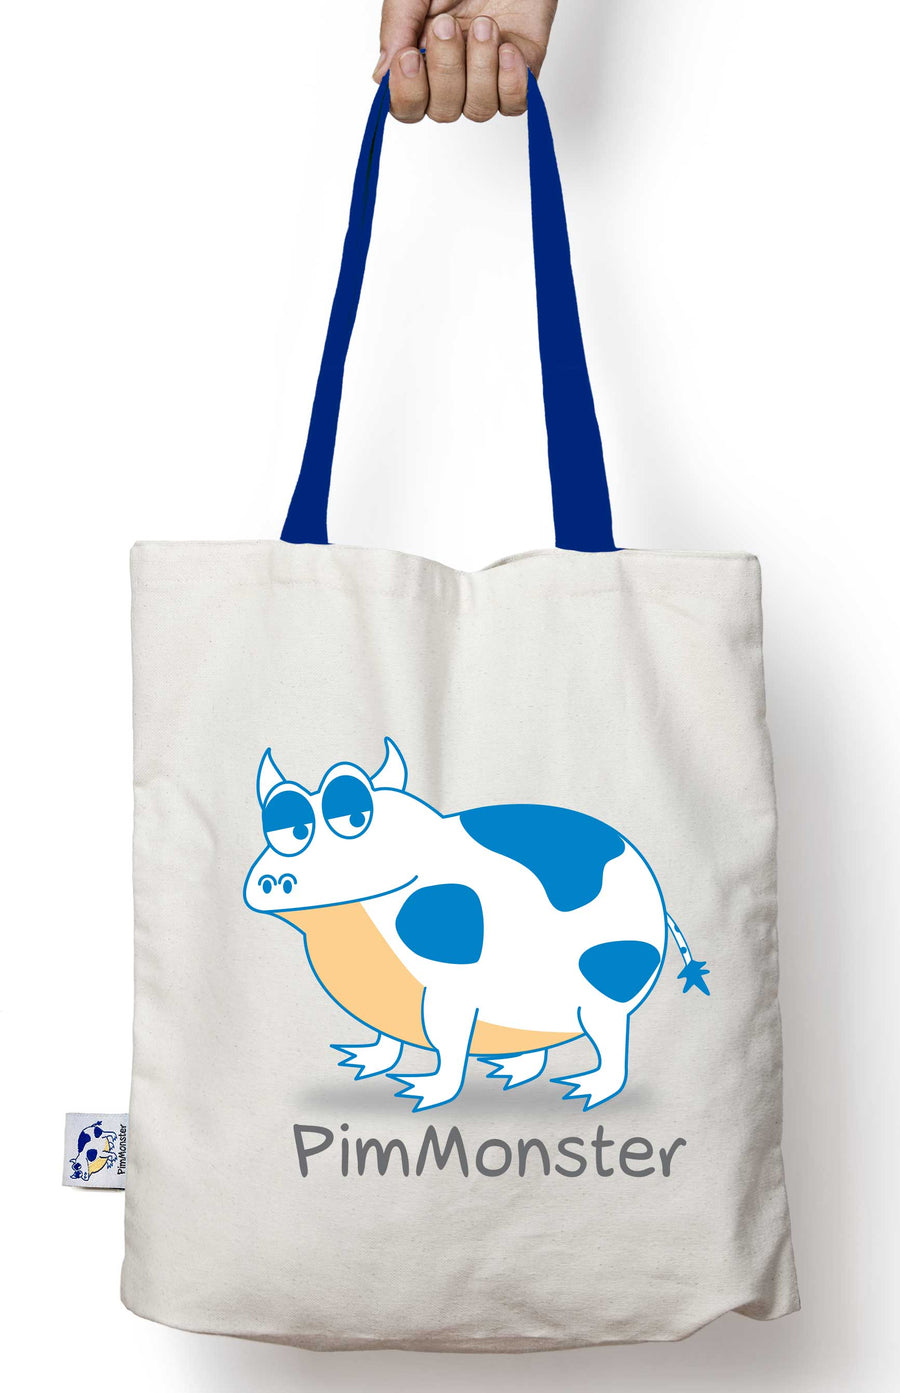 The Pimmonster tote bag - Pimmonster